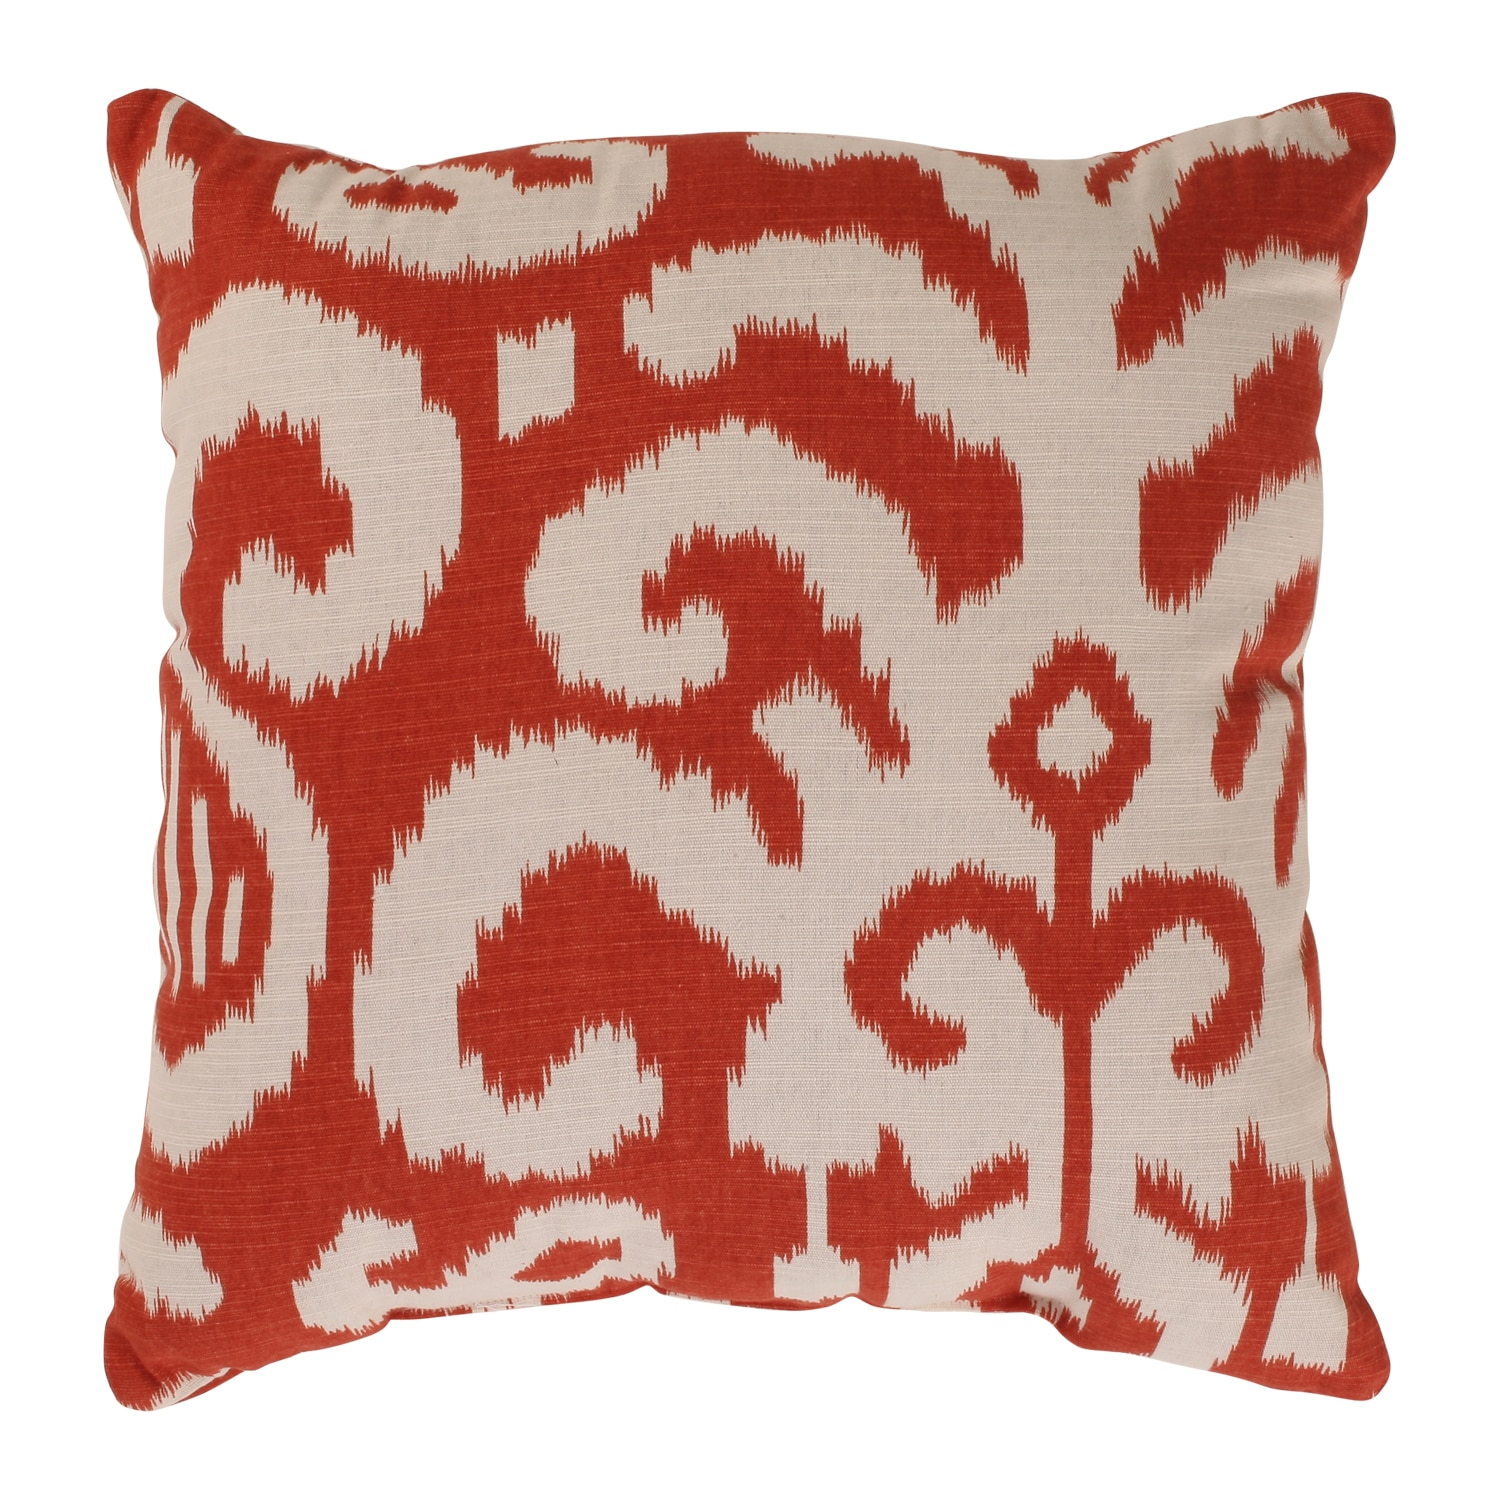 'Fergano' Red Square Throw Pillow - Free Shipping On ...